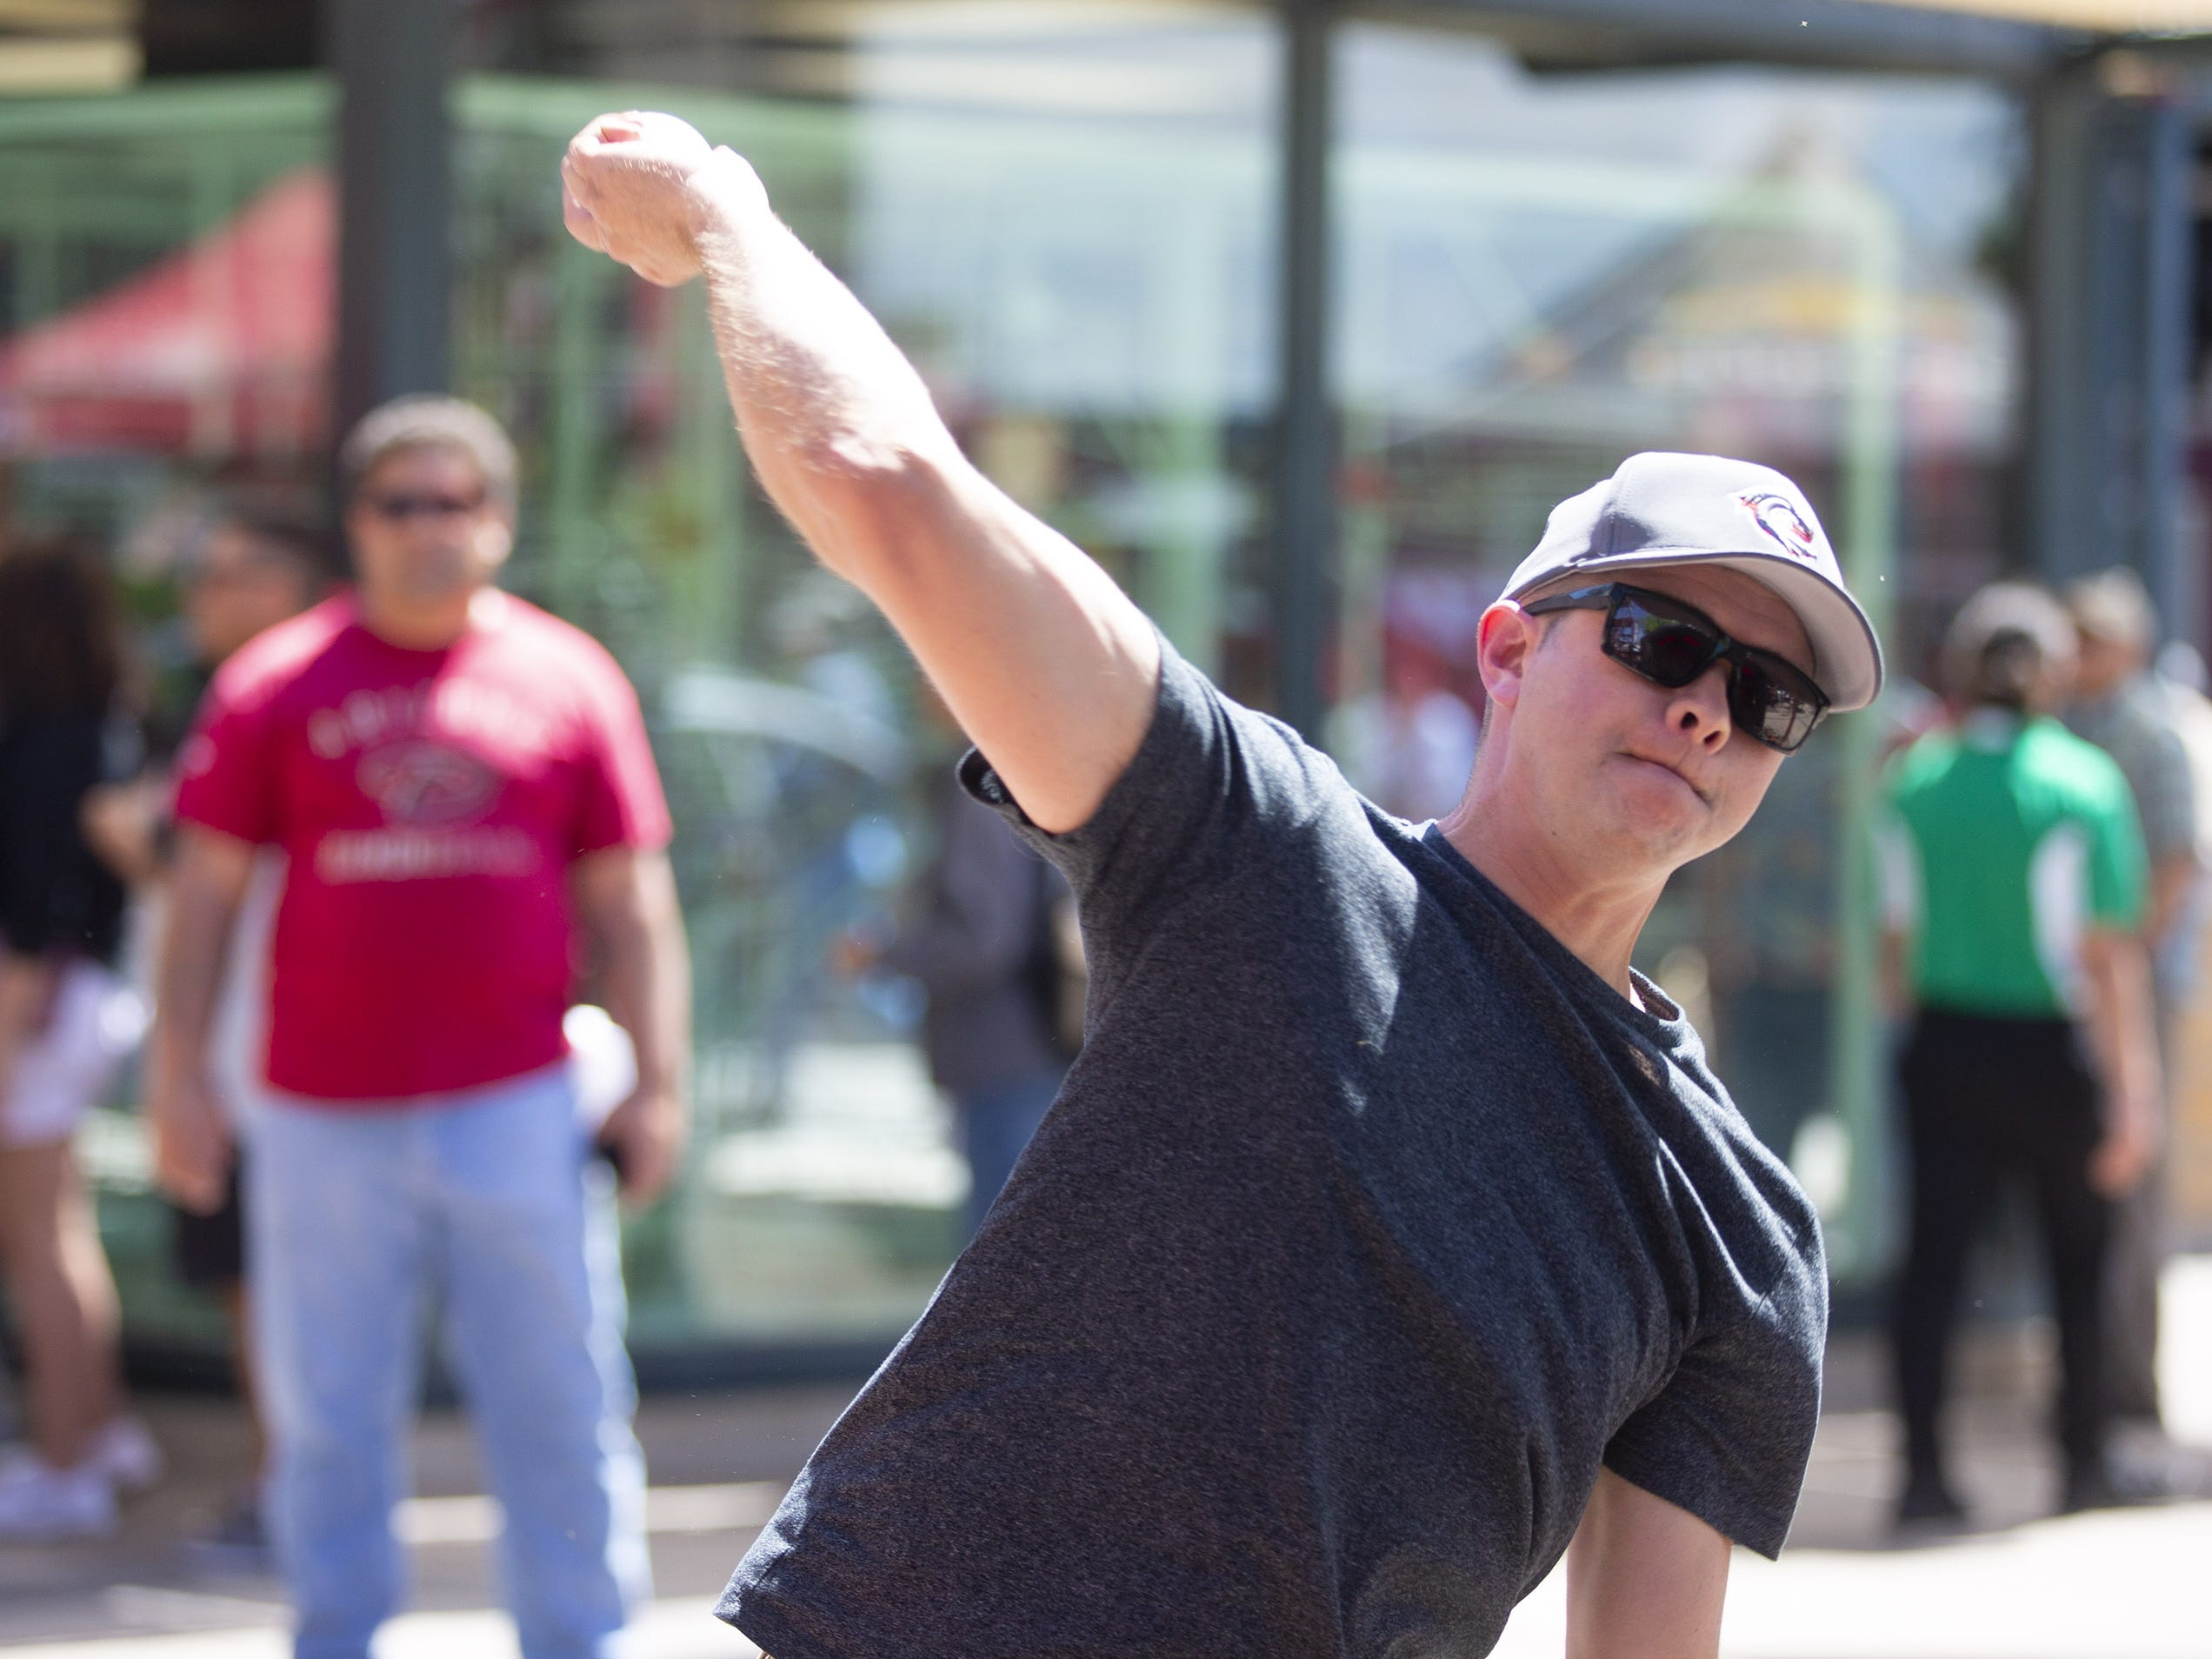 Aaron Schuette, from California, throws a ball during Opening Day street festival at Chase Field in Phoenix on April 5.